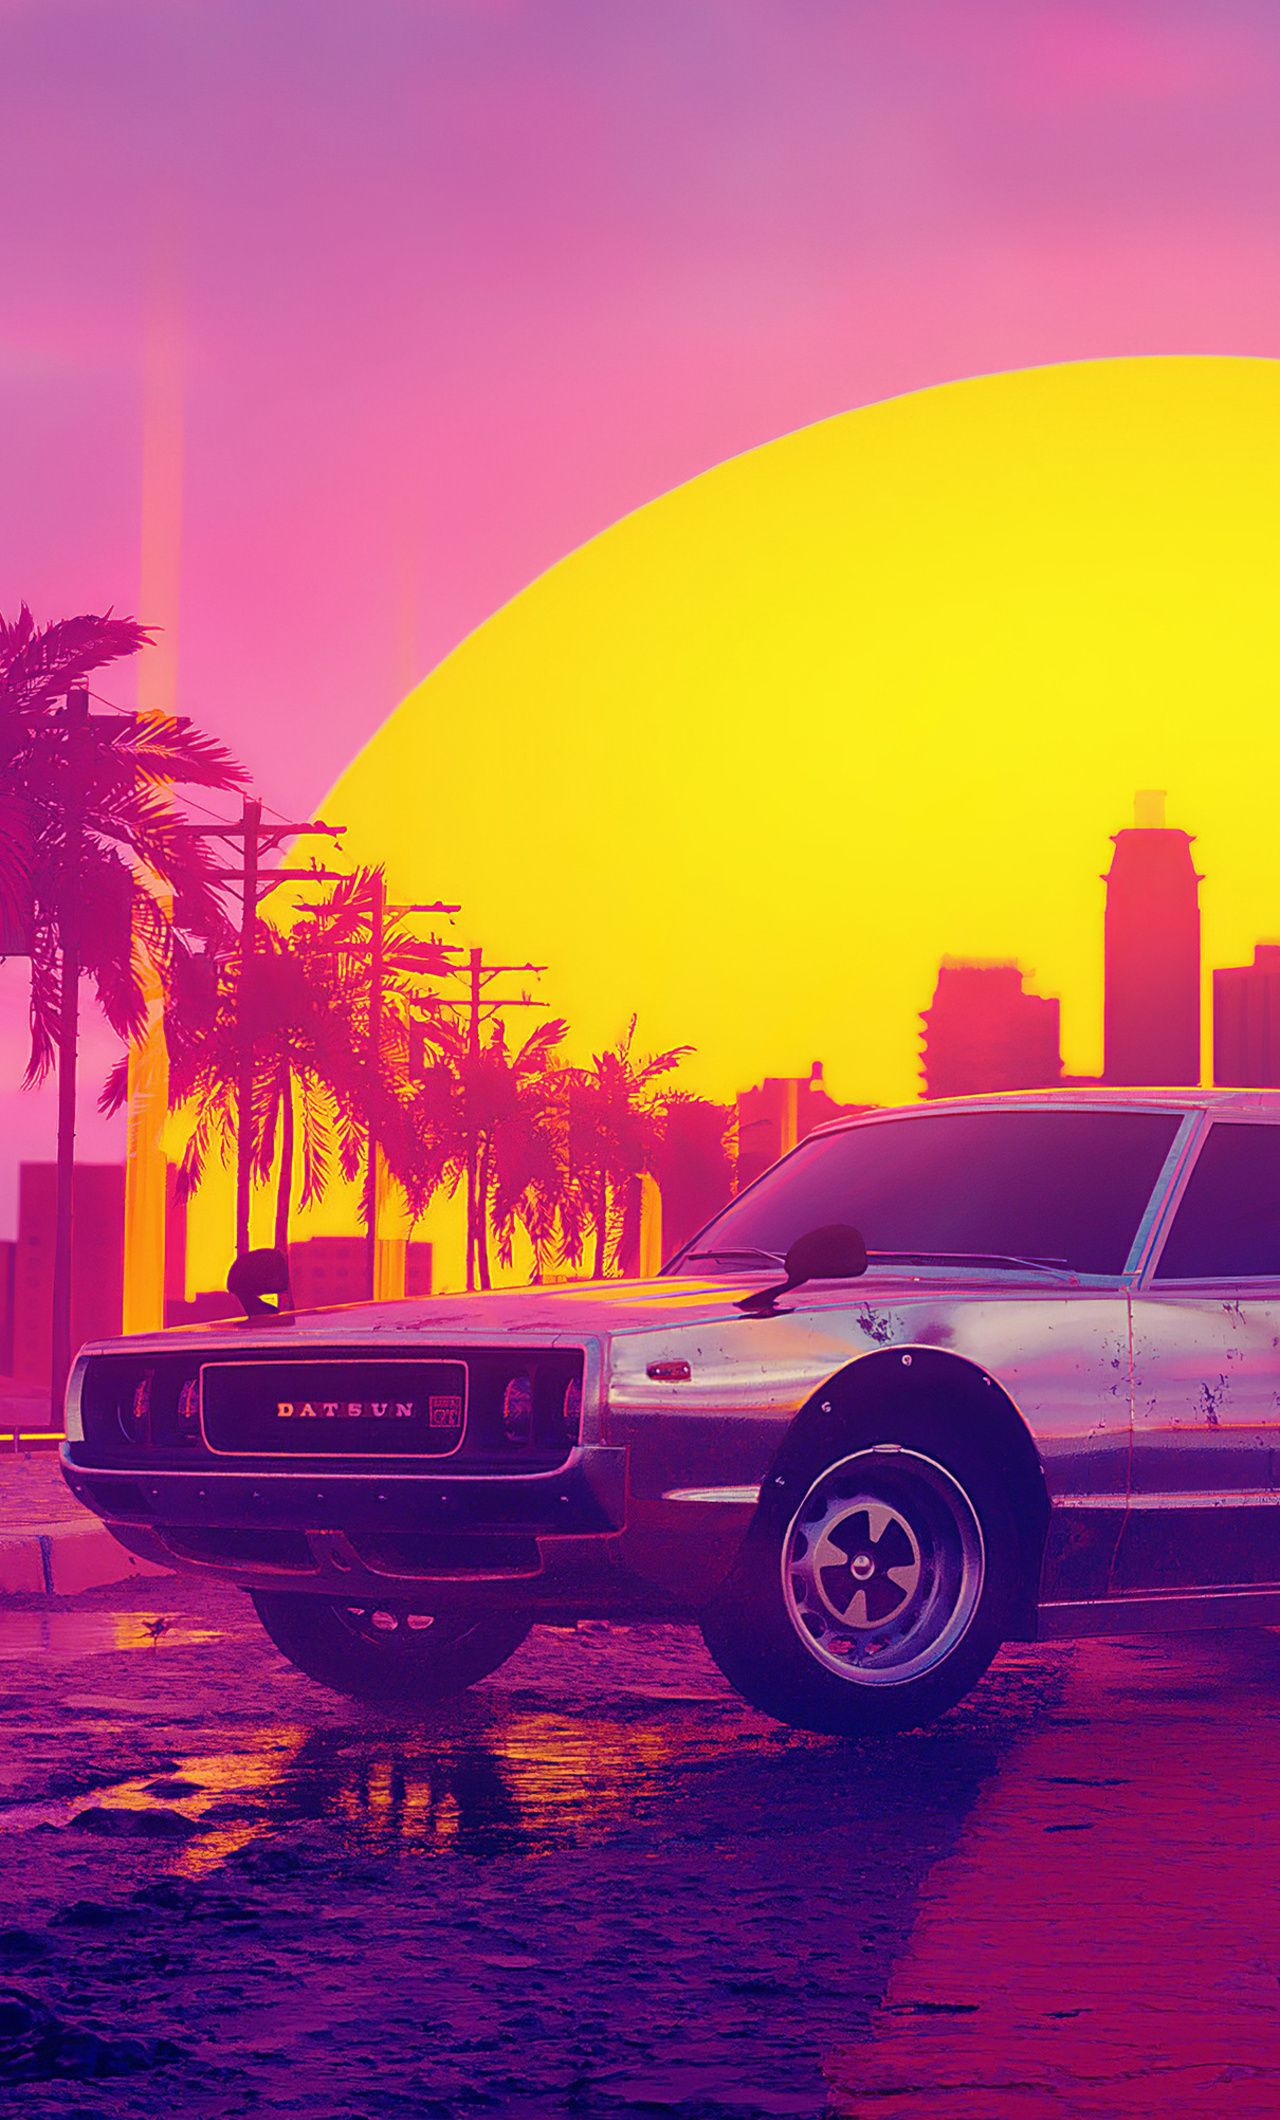 Vice City Wallpapers - Top Free Vice City Backgrounds ...